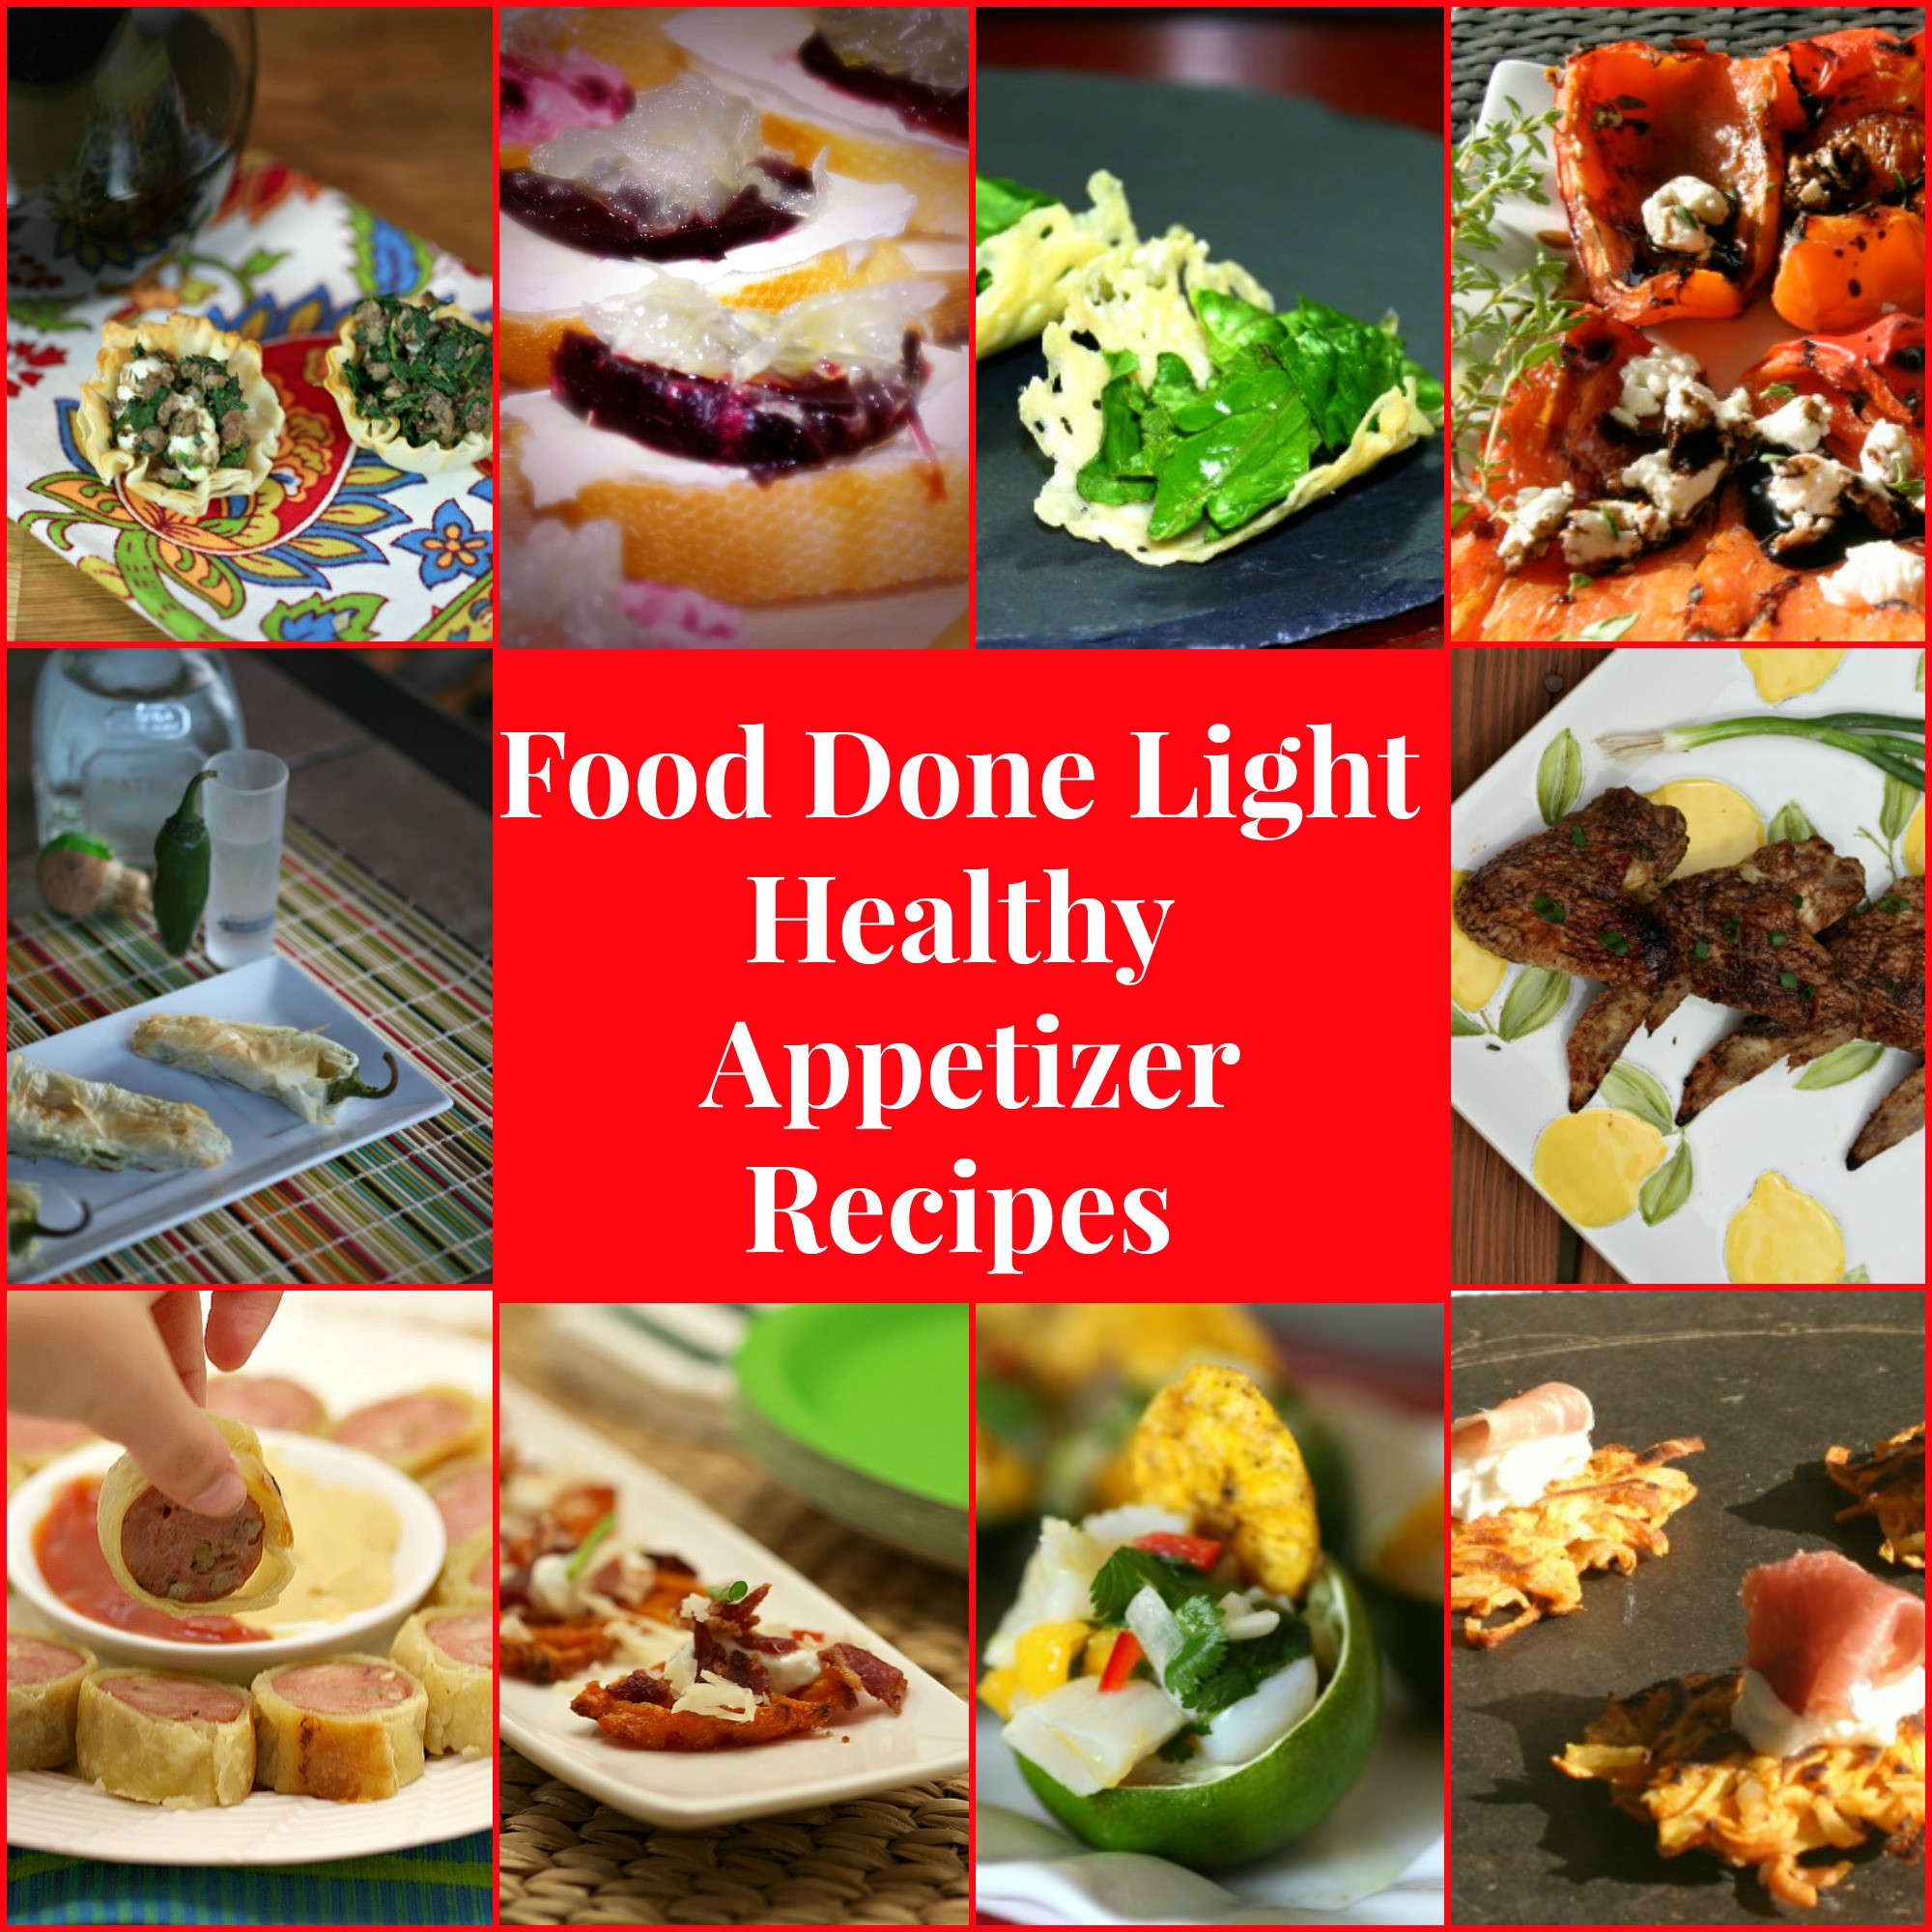 Healthy Restaurant Appetizers  Food Done Light Healthy Appetizer Recipes